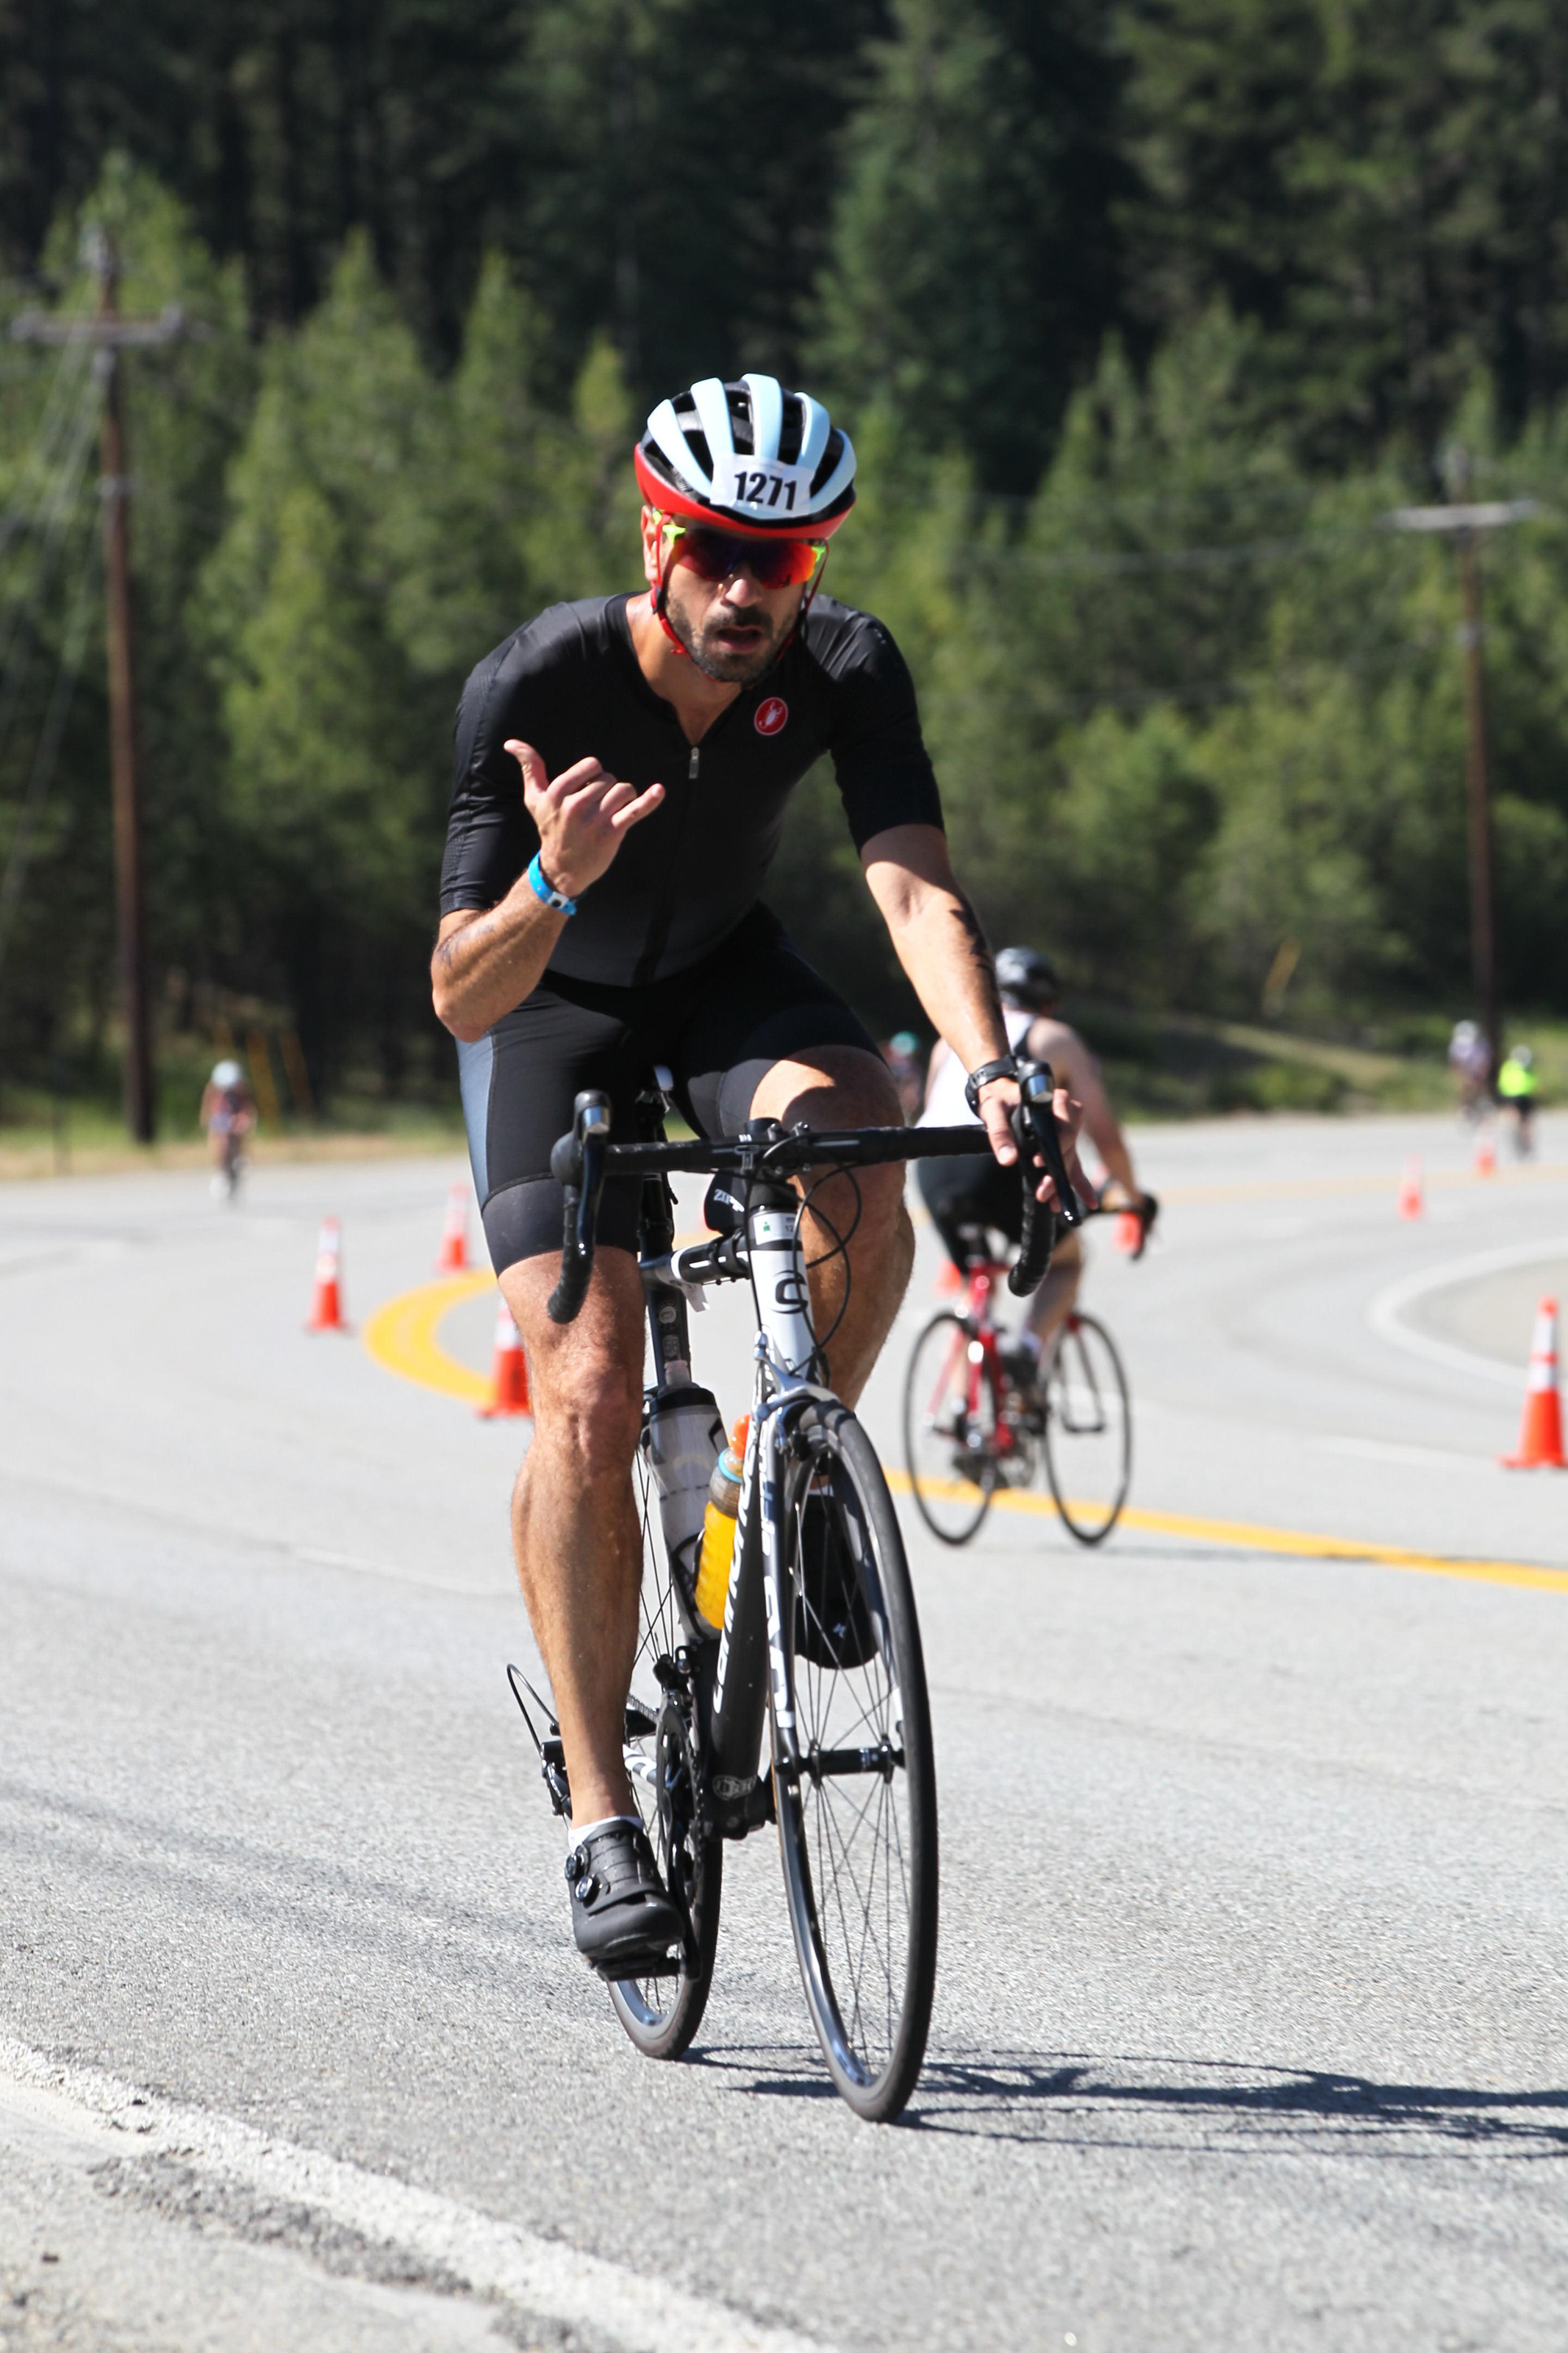 Hangin' loose, but following the nutrition plan on the bike at CDA 70.3